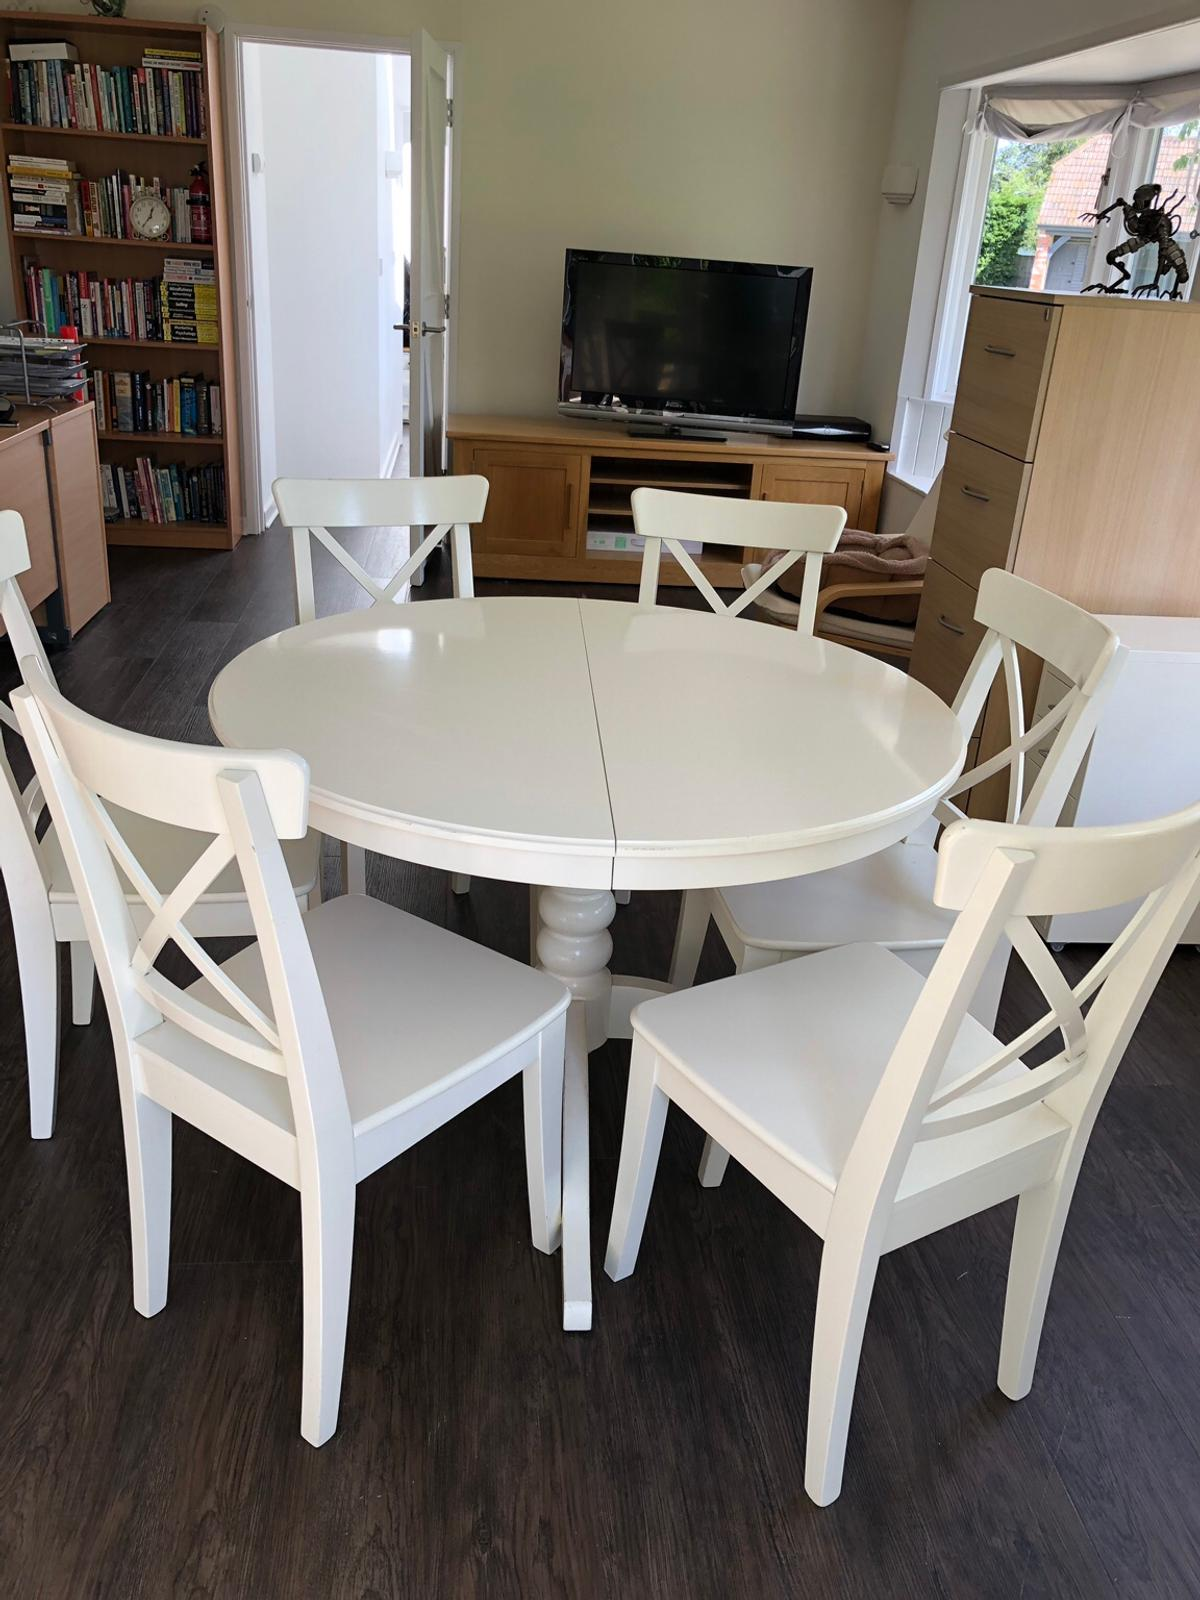 Dining Table And Six Chairs In South